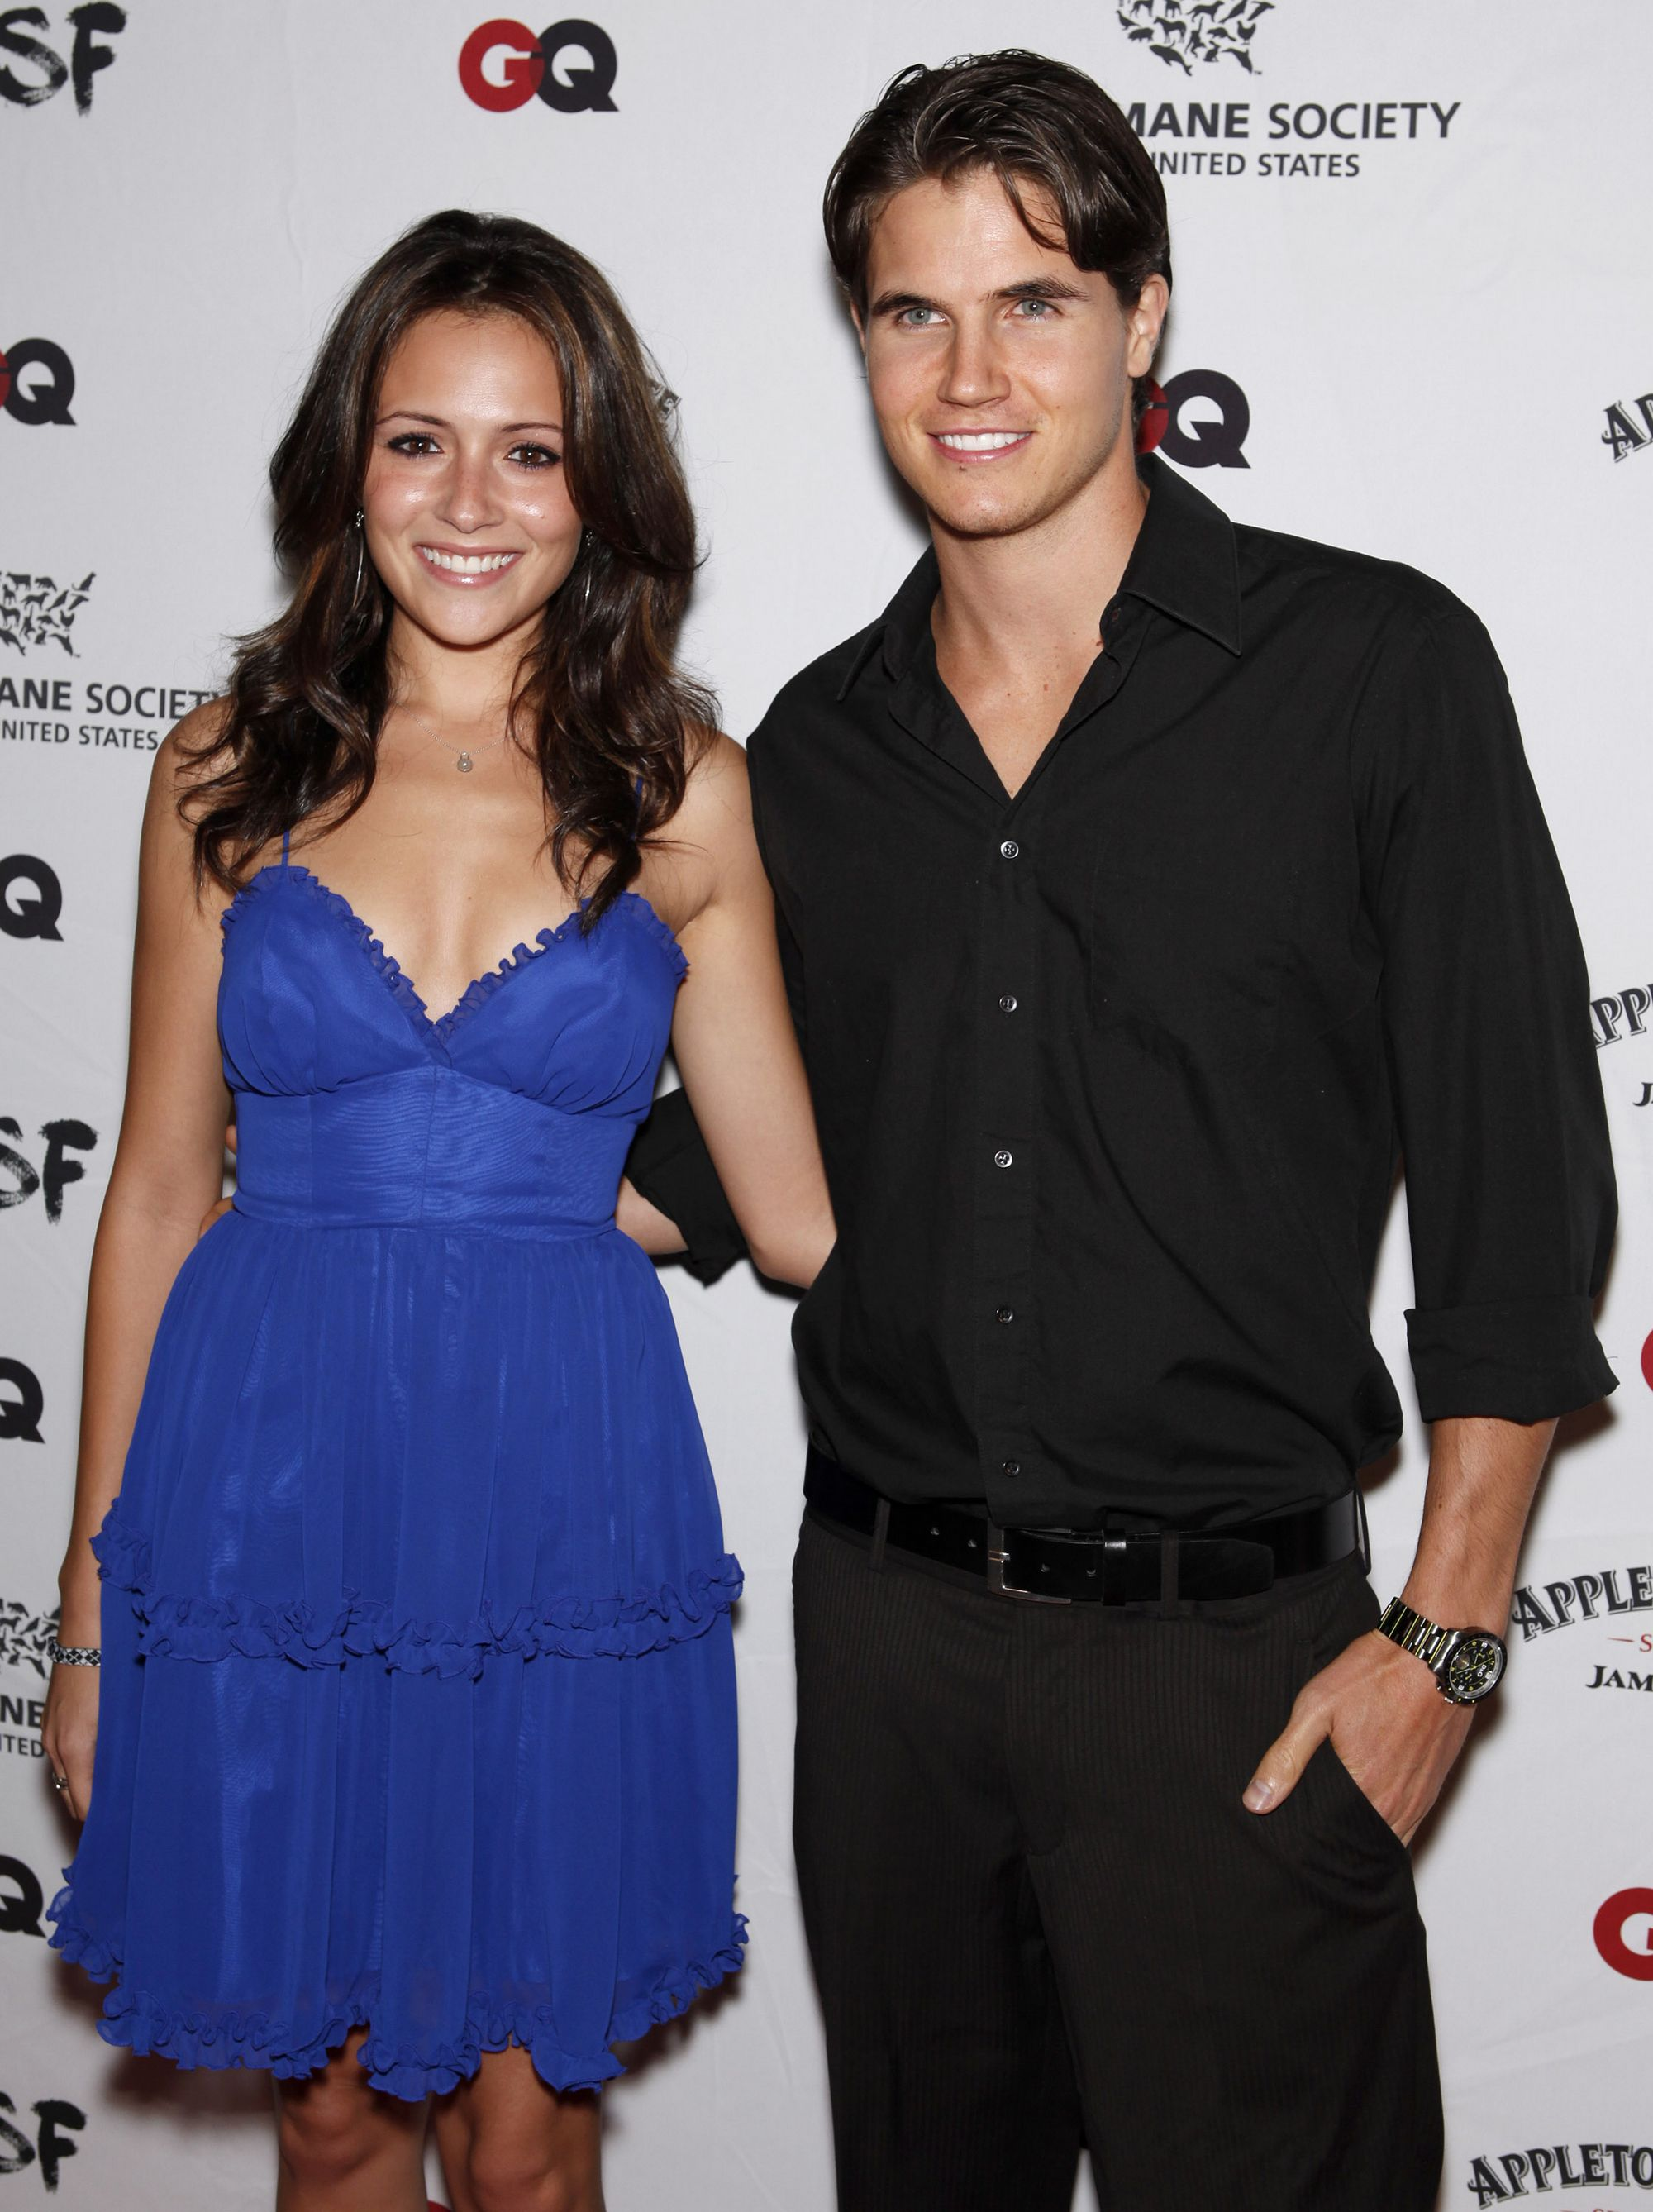 September 22nd, 2009 - NSF and GQ Magazine's Stop Puppy